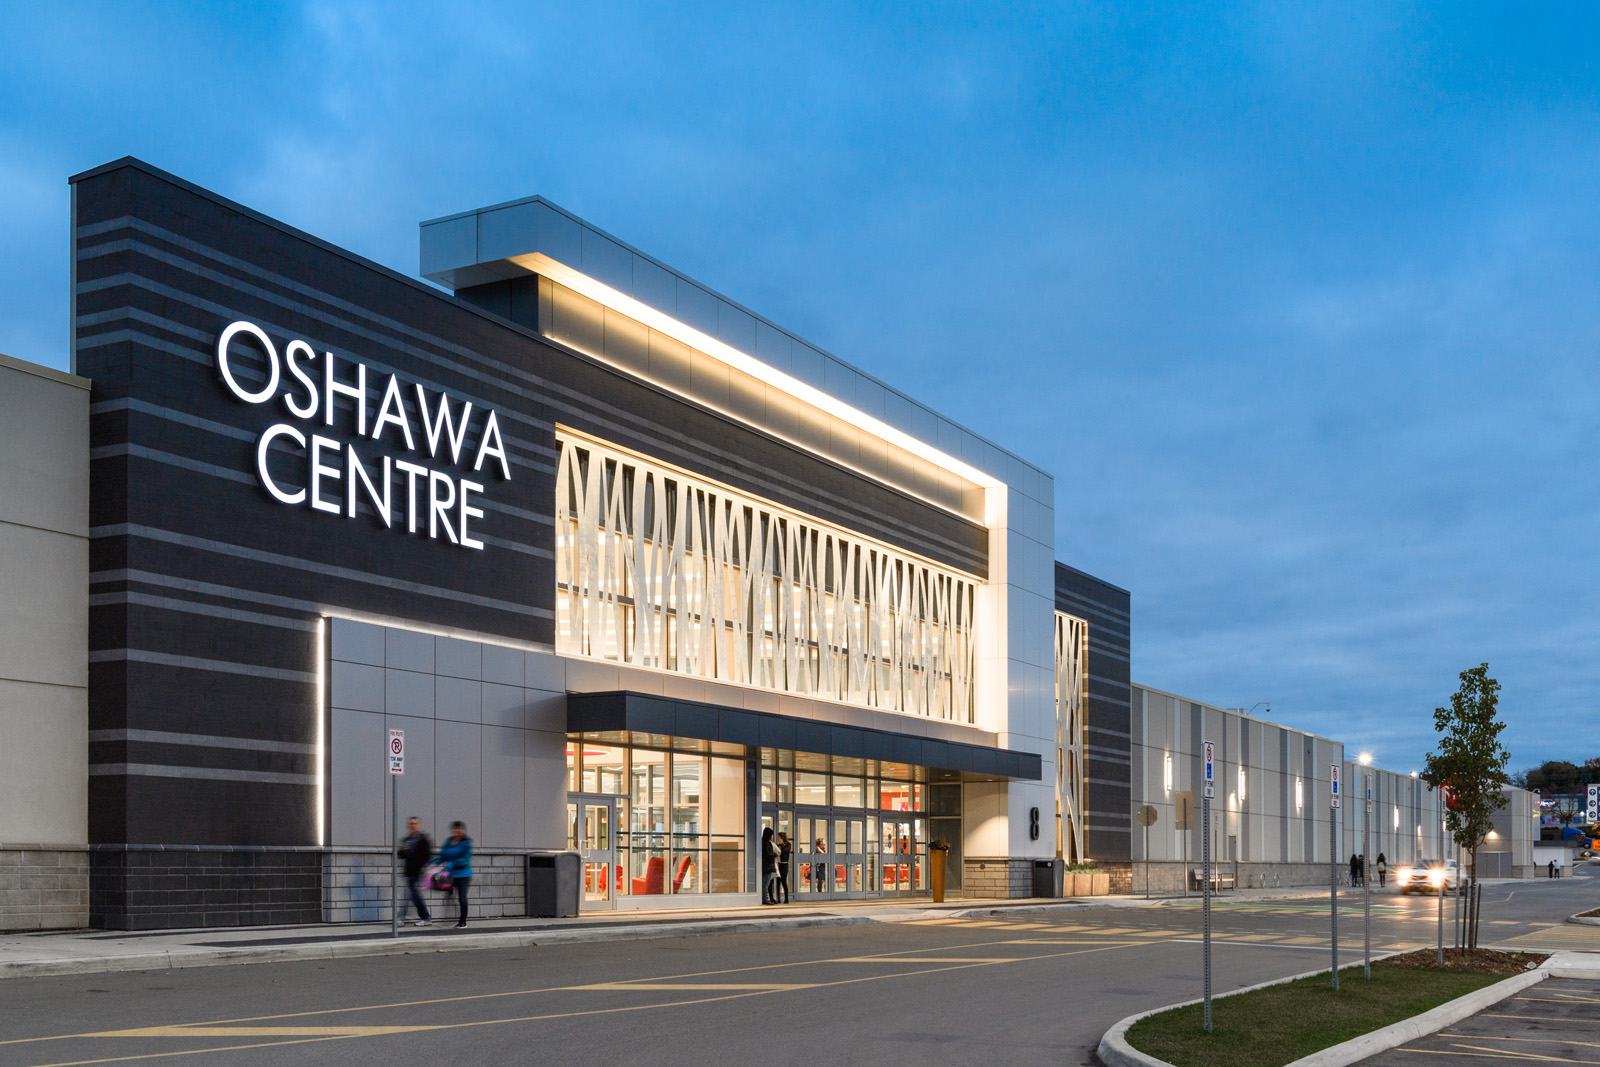 Pickering man charged after allegedly videotaping women at the Oshawa Centre